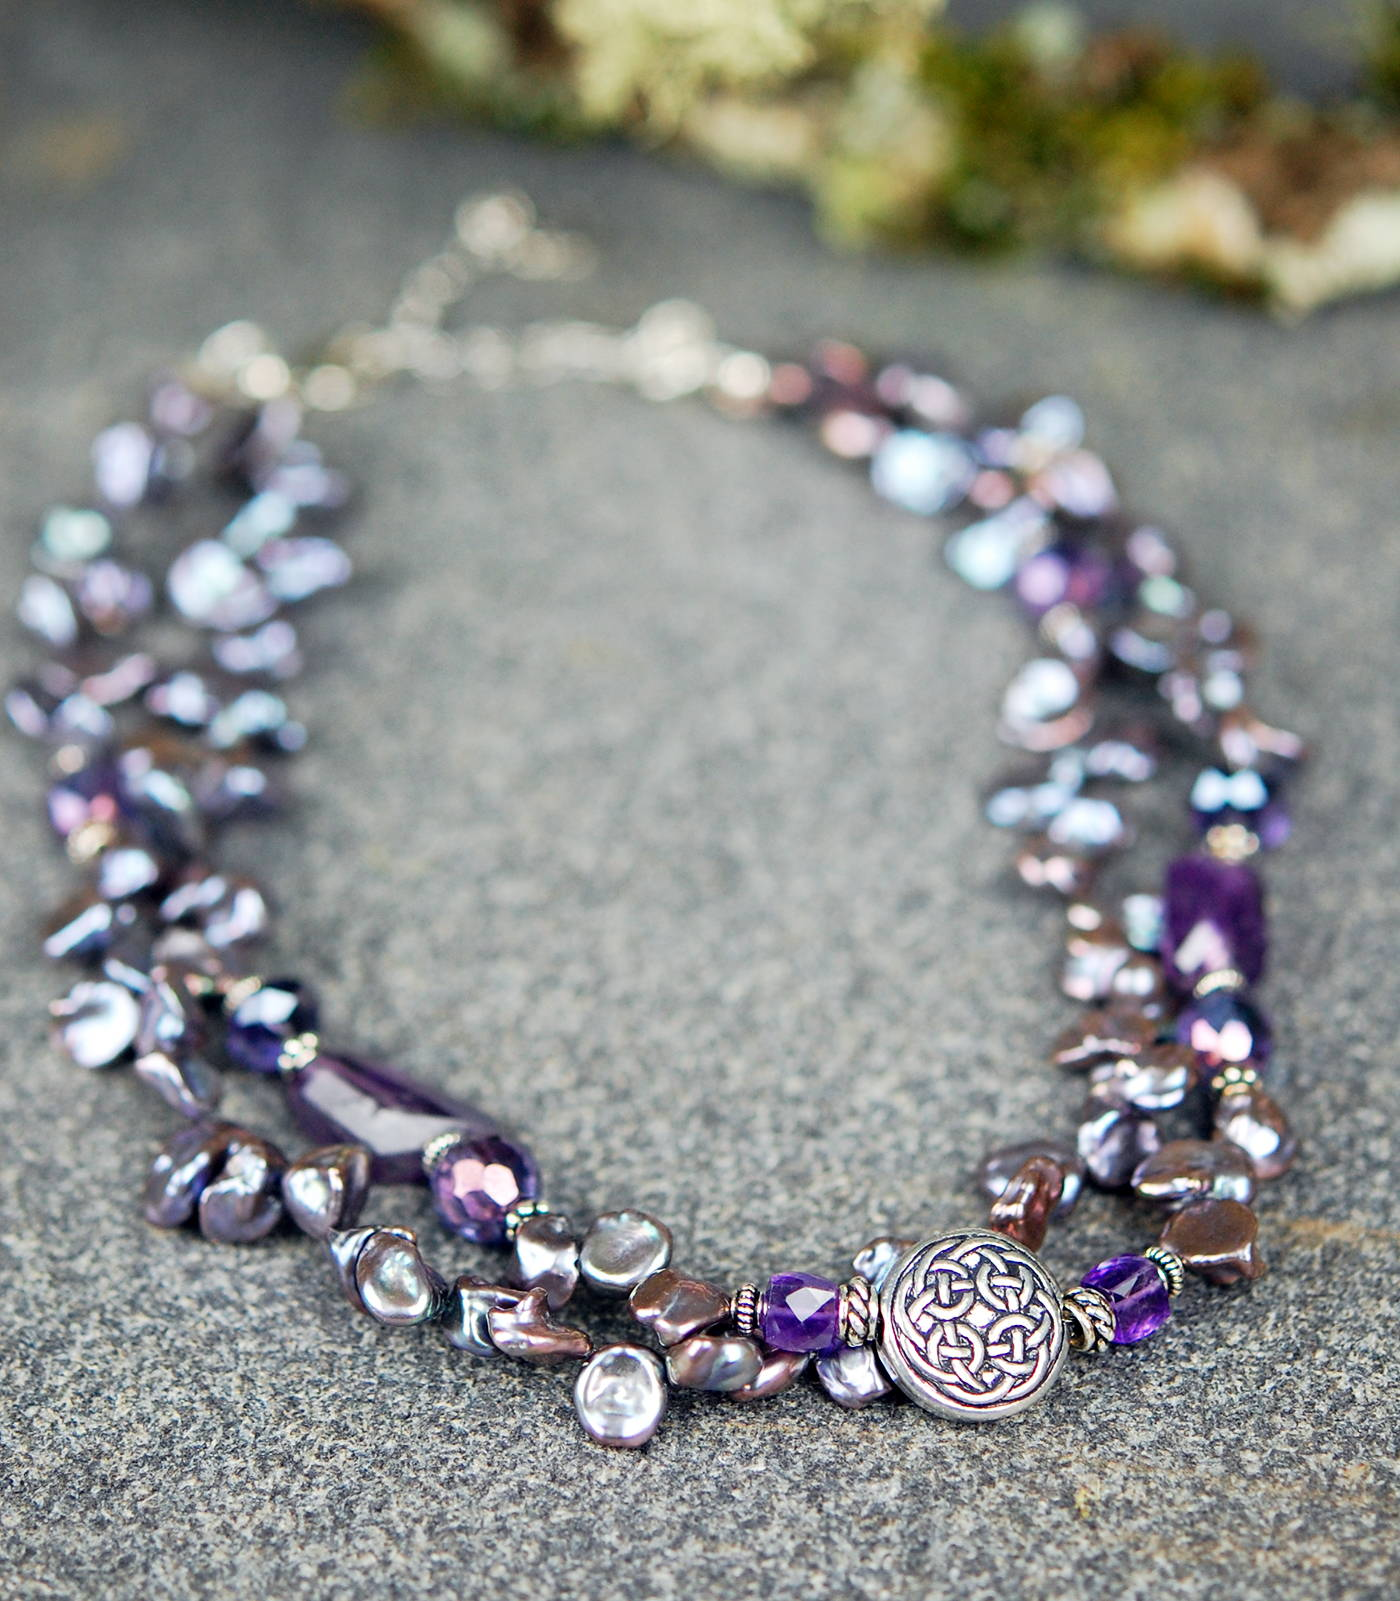 The Celtic Jewelry Studio Celtic Festival OnlineLavender Freshwater Pearls with Amethyst Gemstones